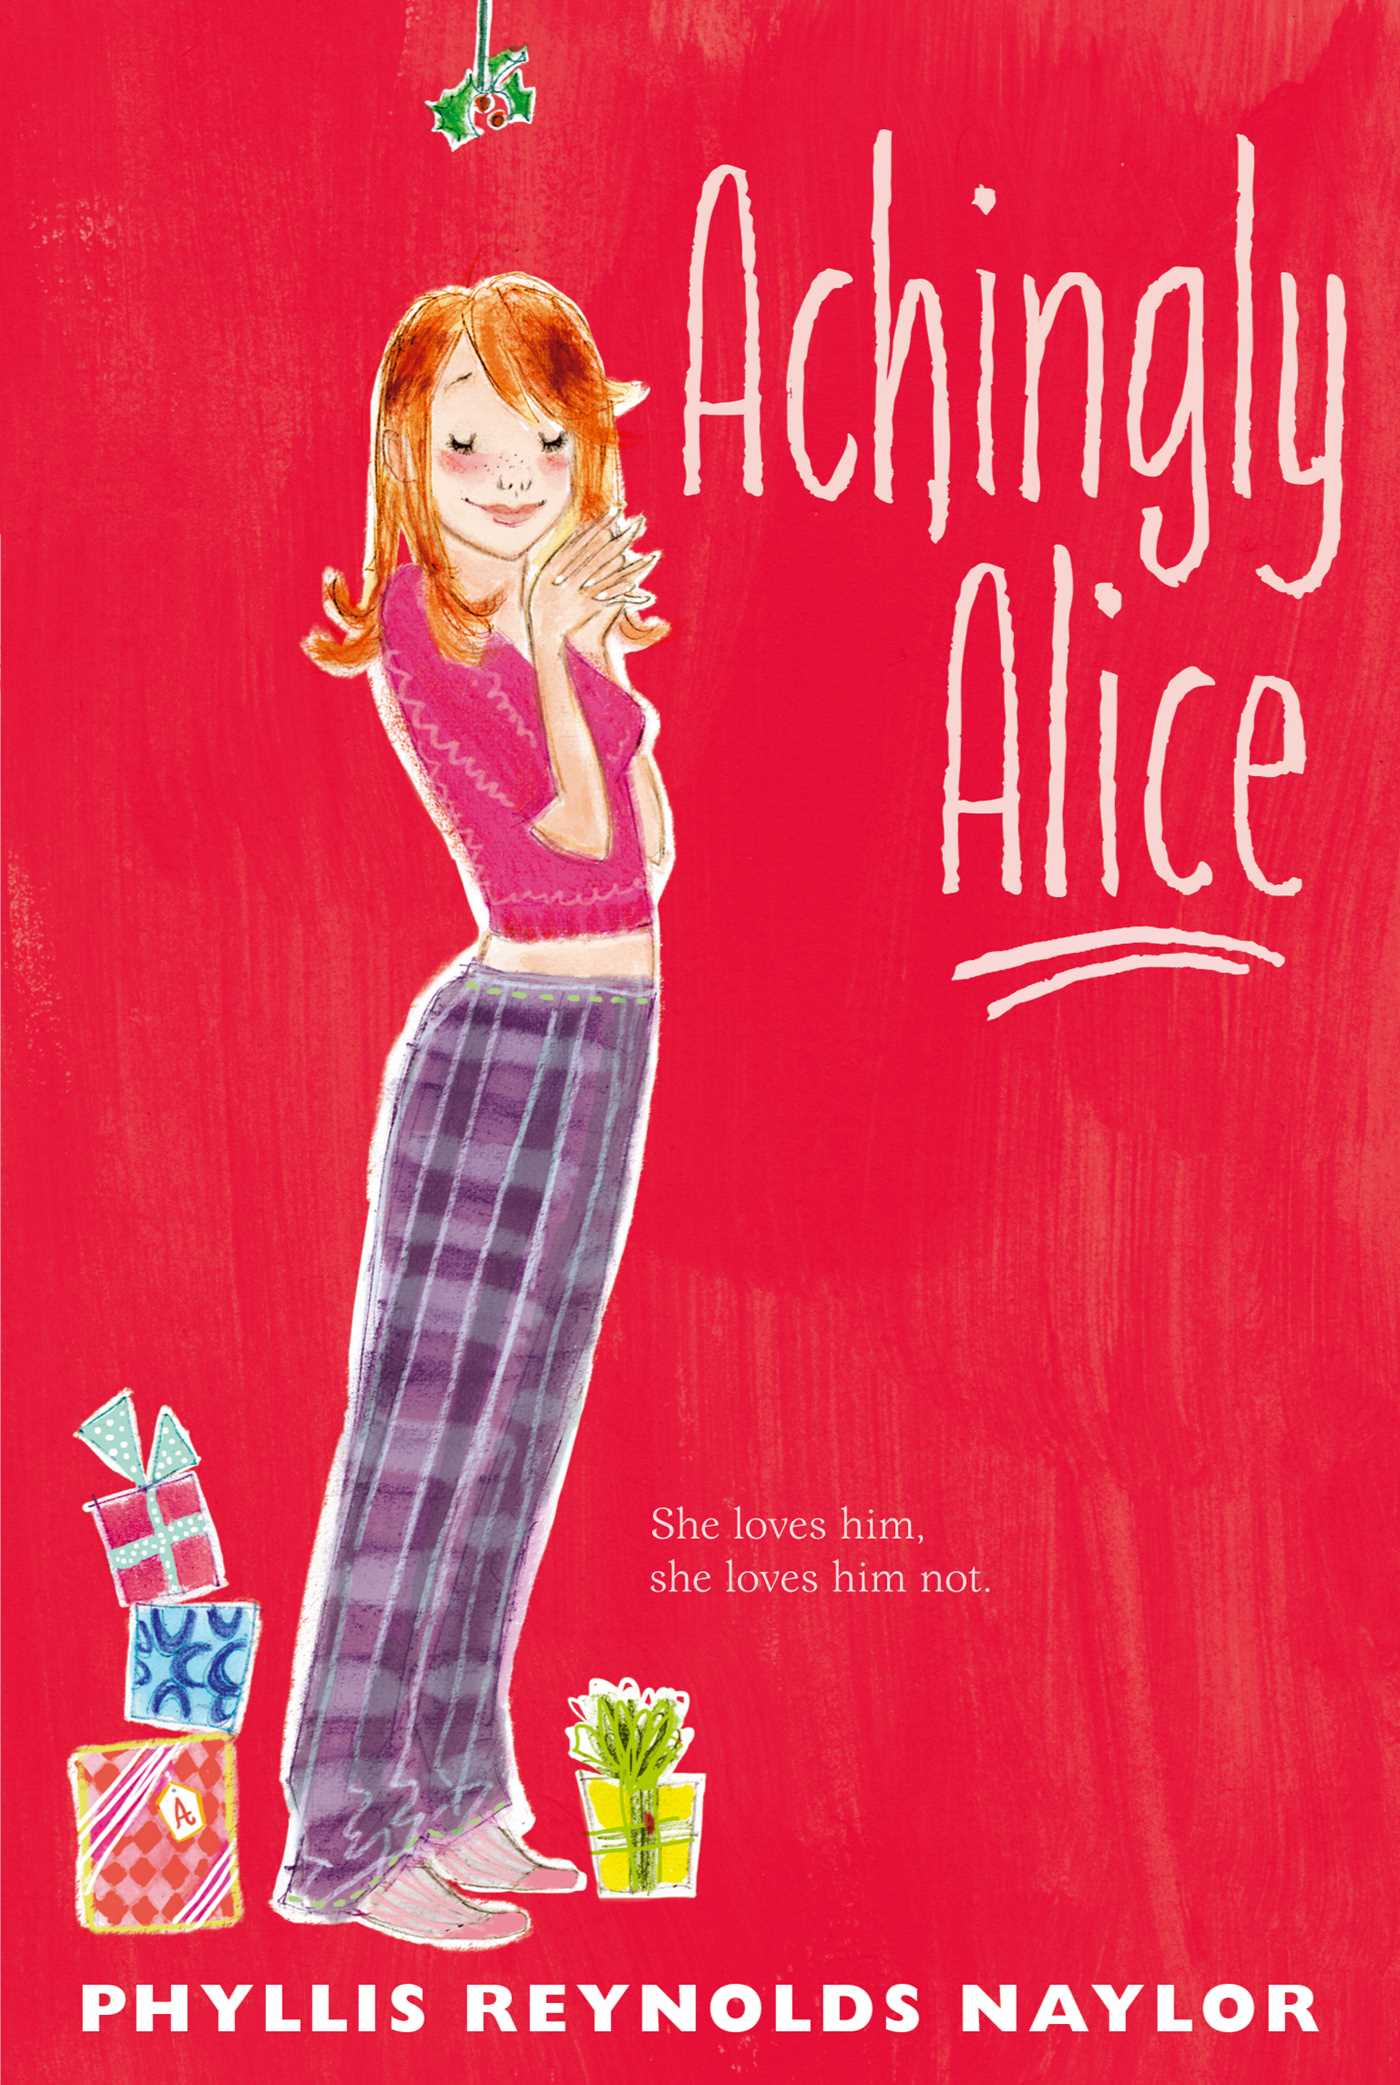 Achingly-alice-9781439132371_hr